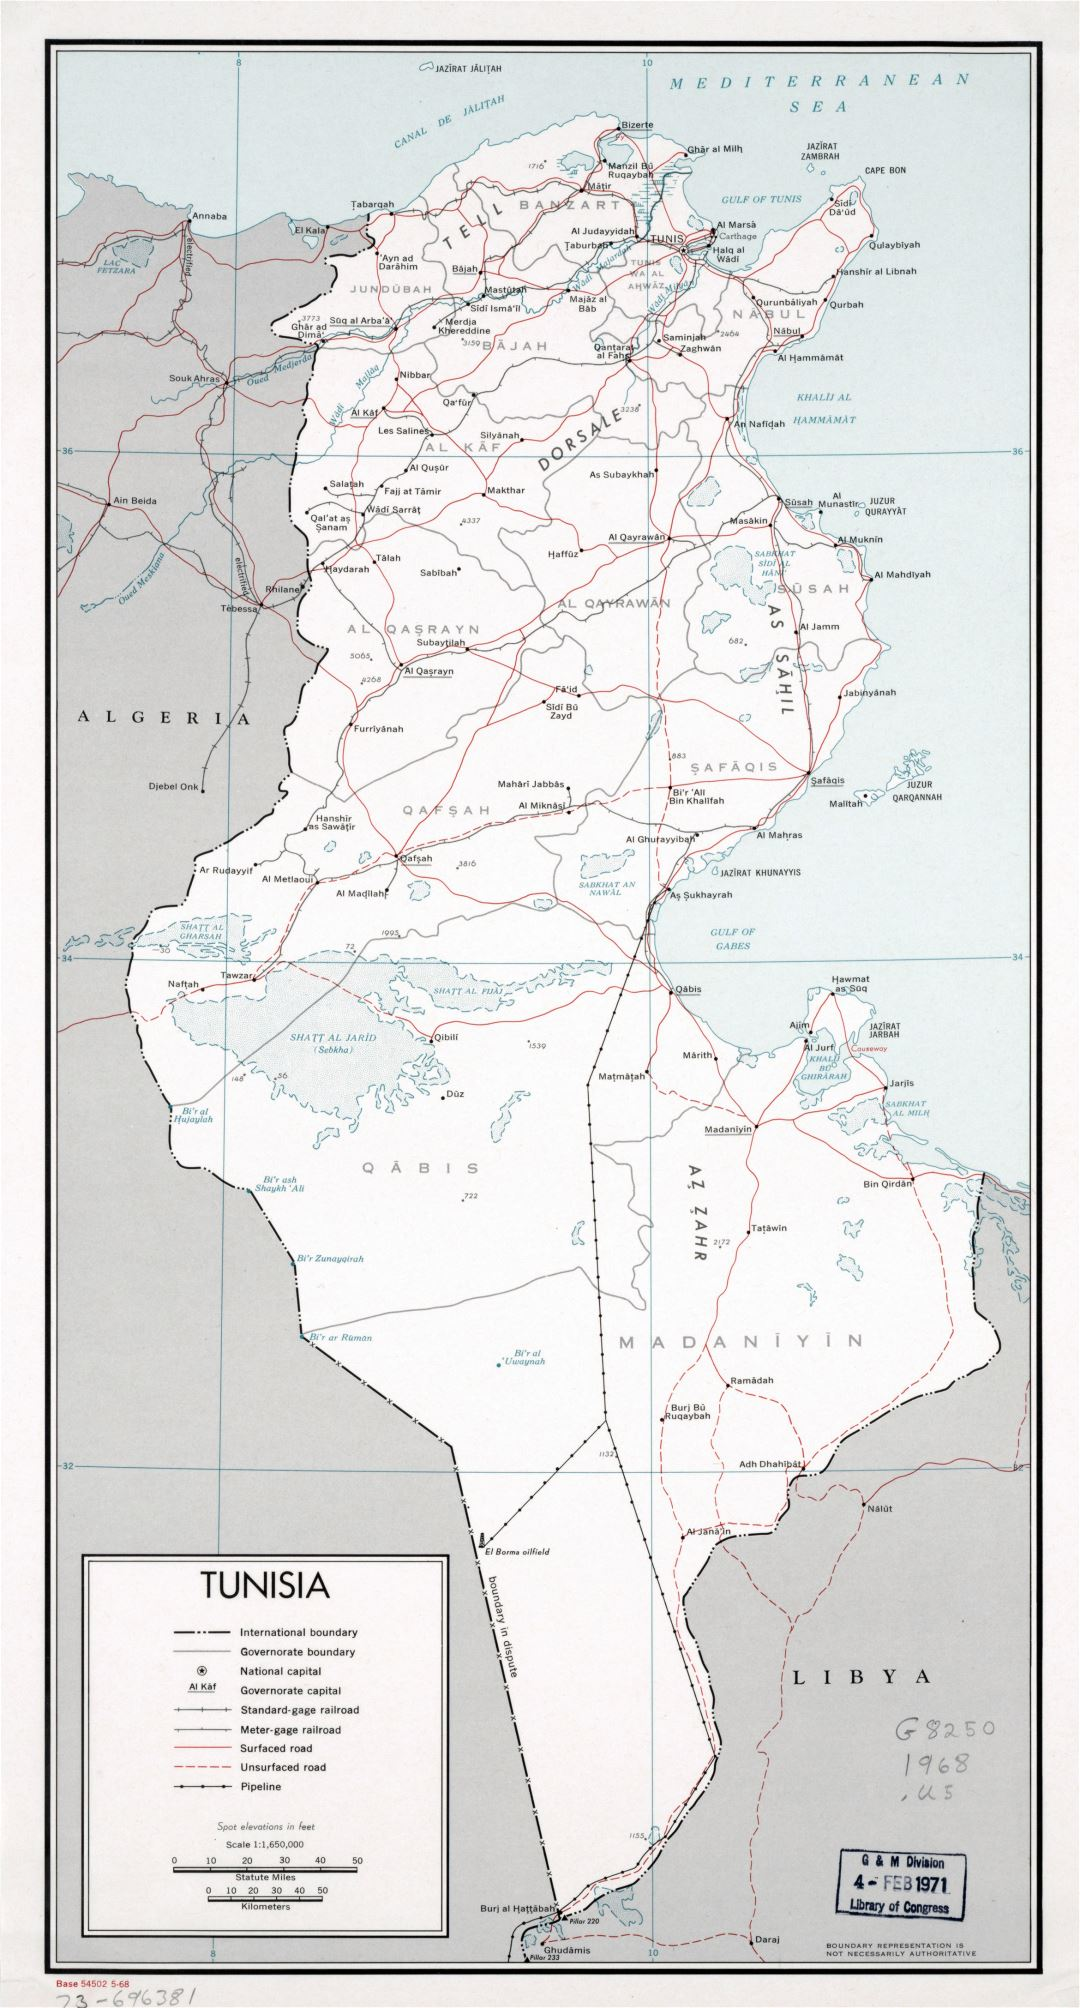 Large detailed political and administrative map of Tunisia with roads, railroads, pipelines and major cities - 1968